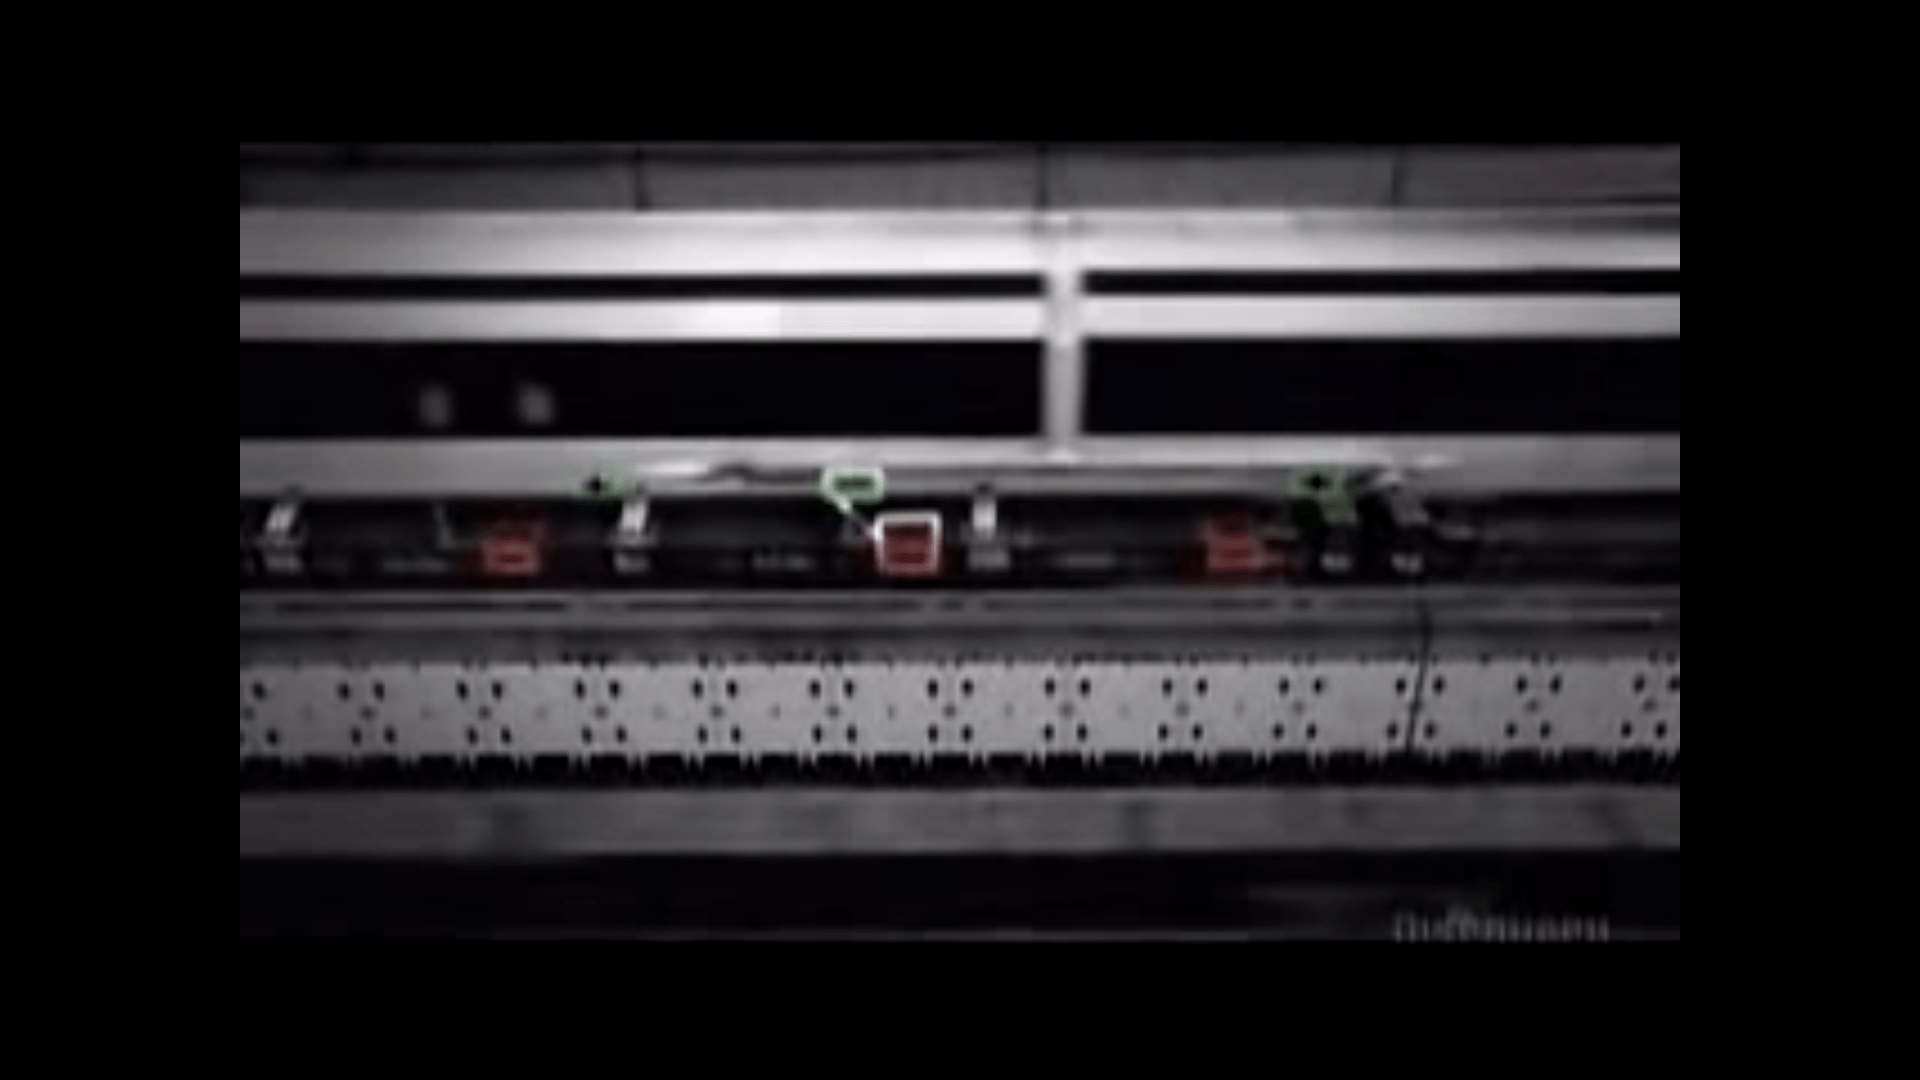 The mag-lev track is designed such that appropriate sides of magnets in the track (red) face the magnets in the train car (green) such that they repel each other and the train can levitate.